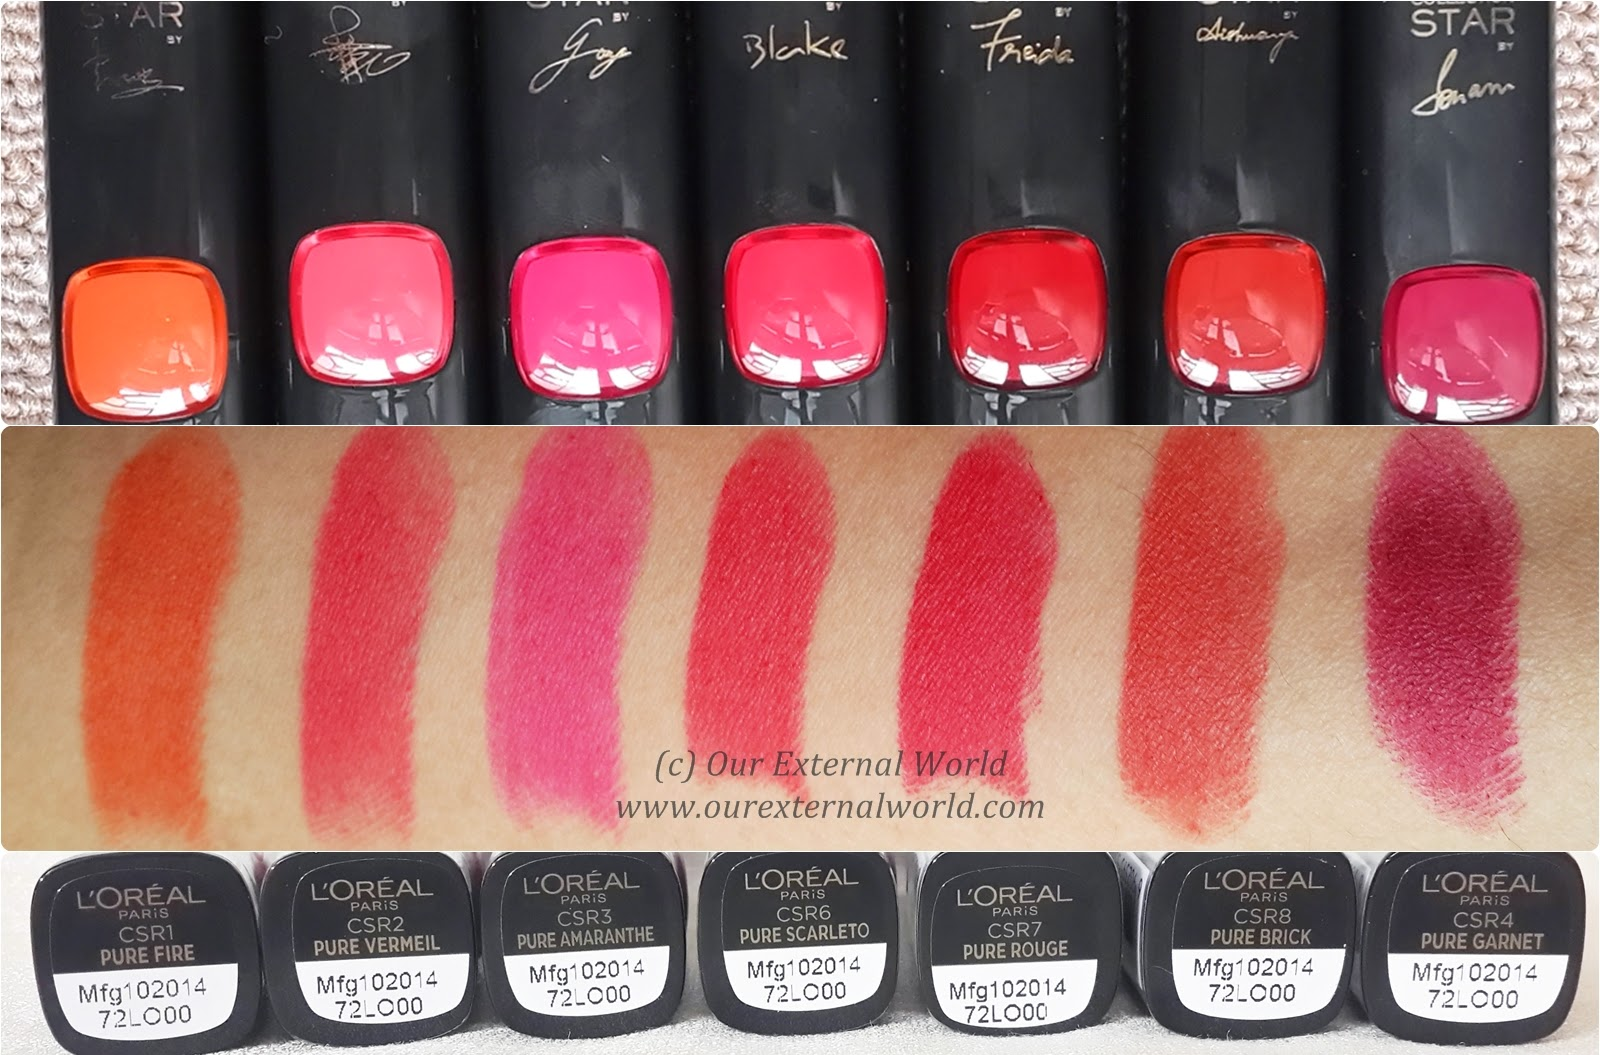 Loreal color caresse by color rich lipstick - L Oreal Paris Collection Star Range Pure Reds Review All 7 Lipsticks Swatches